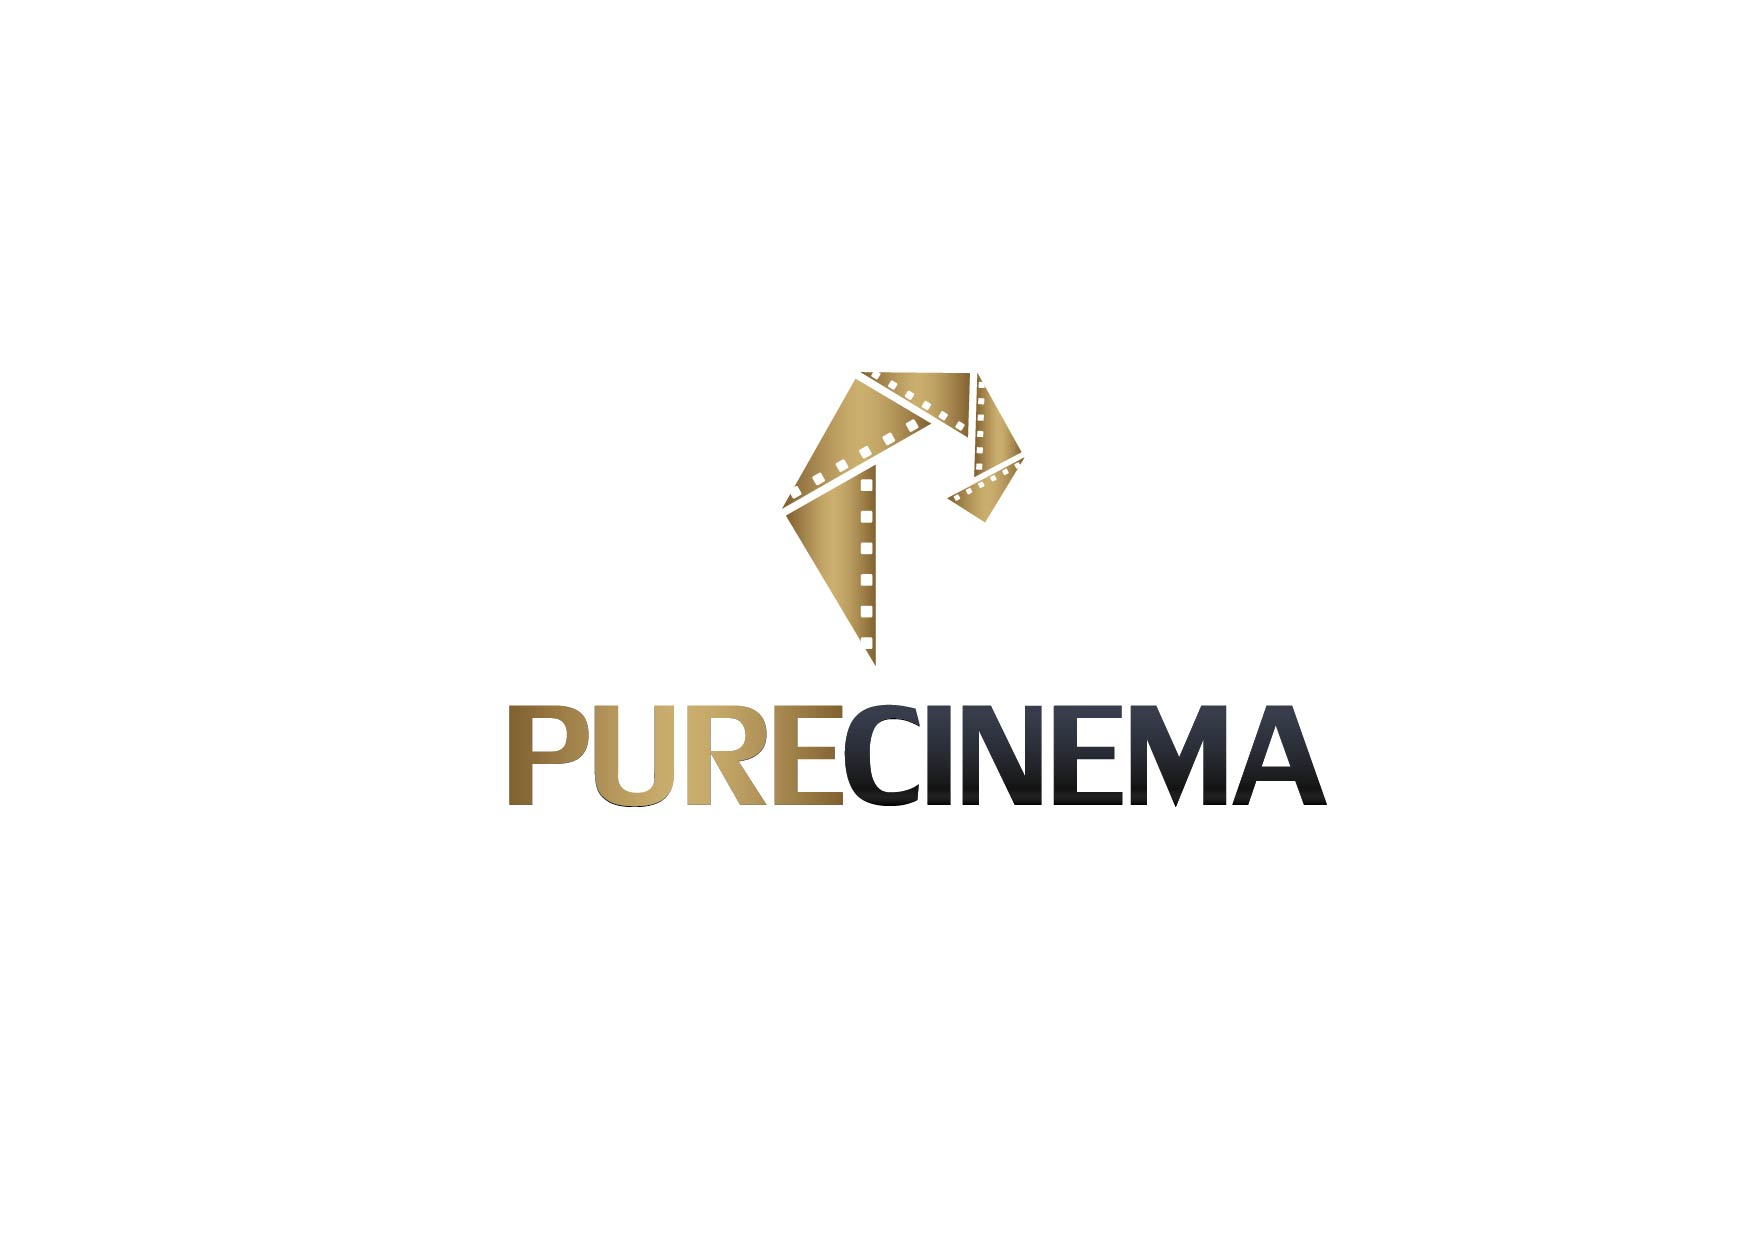 Logo Design by Yash Sindhav - Entry No. 72 in the Logo Design Contest Imaginative Logo Design for Pure Cinema.